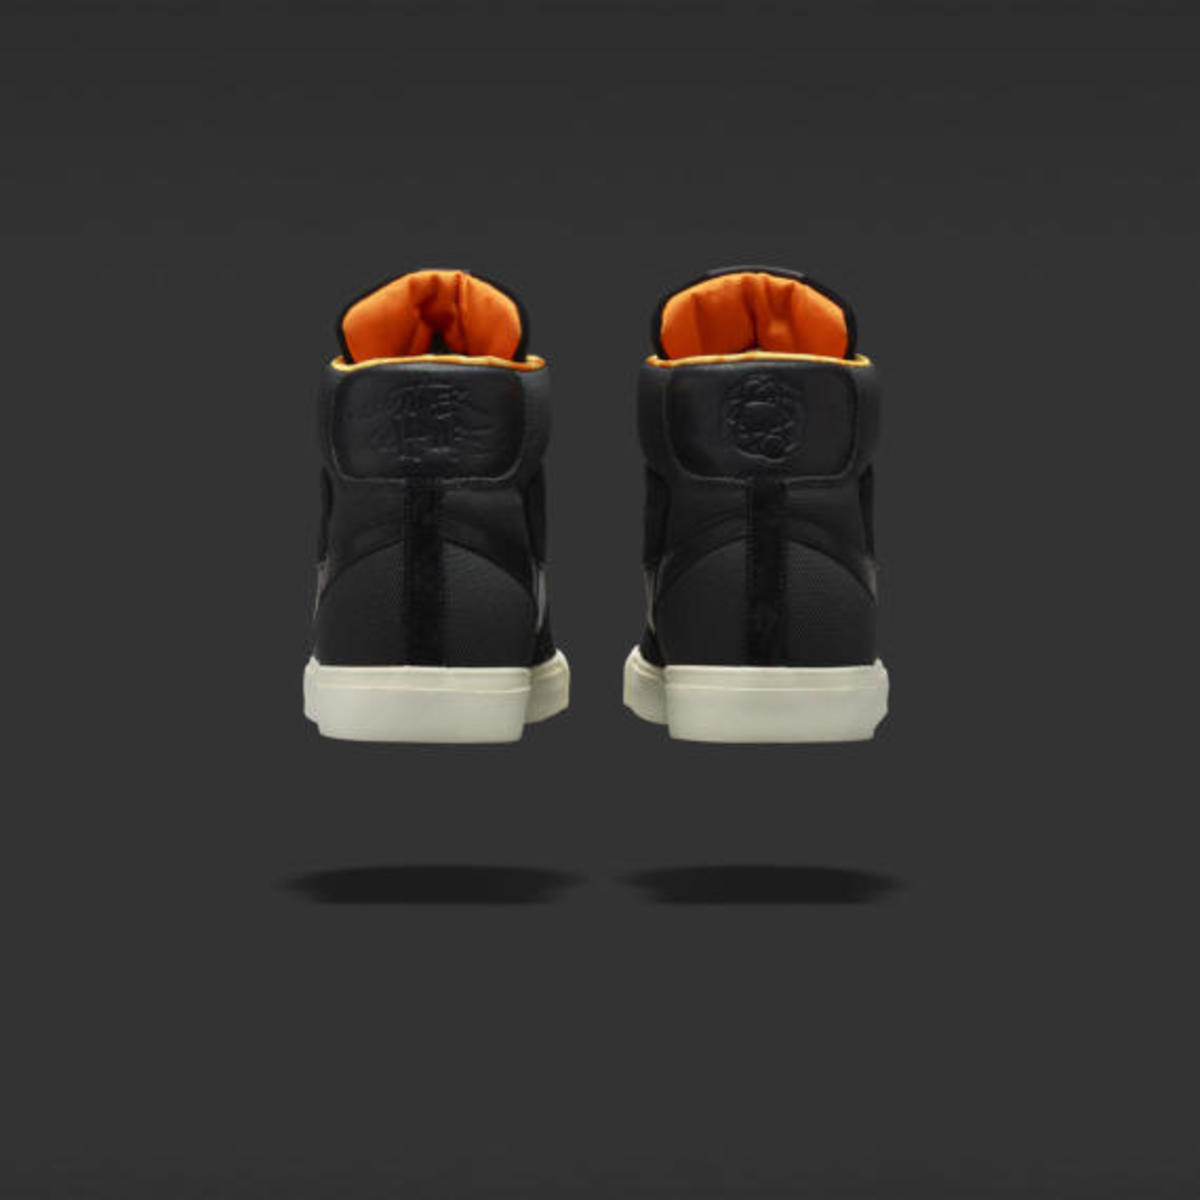 nike-mo-wax-by-james-lavelle-capsule-release-info-08